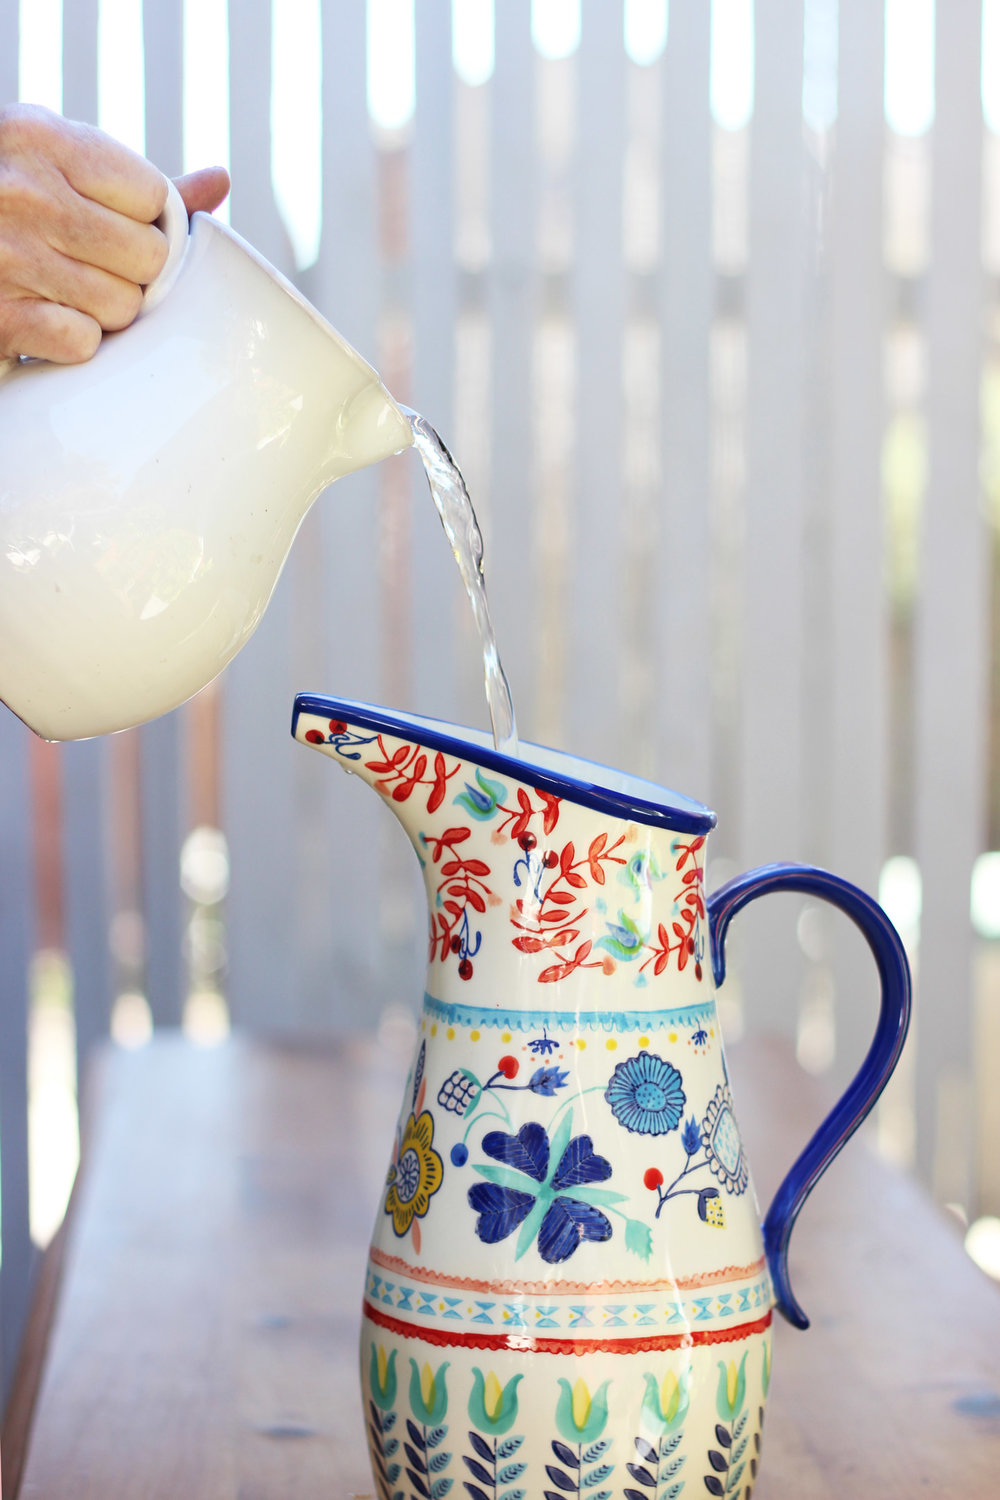 Fill pitcher with water to 2 inches below the top.